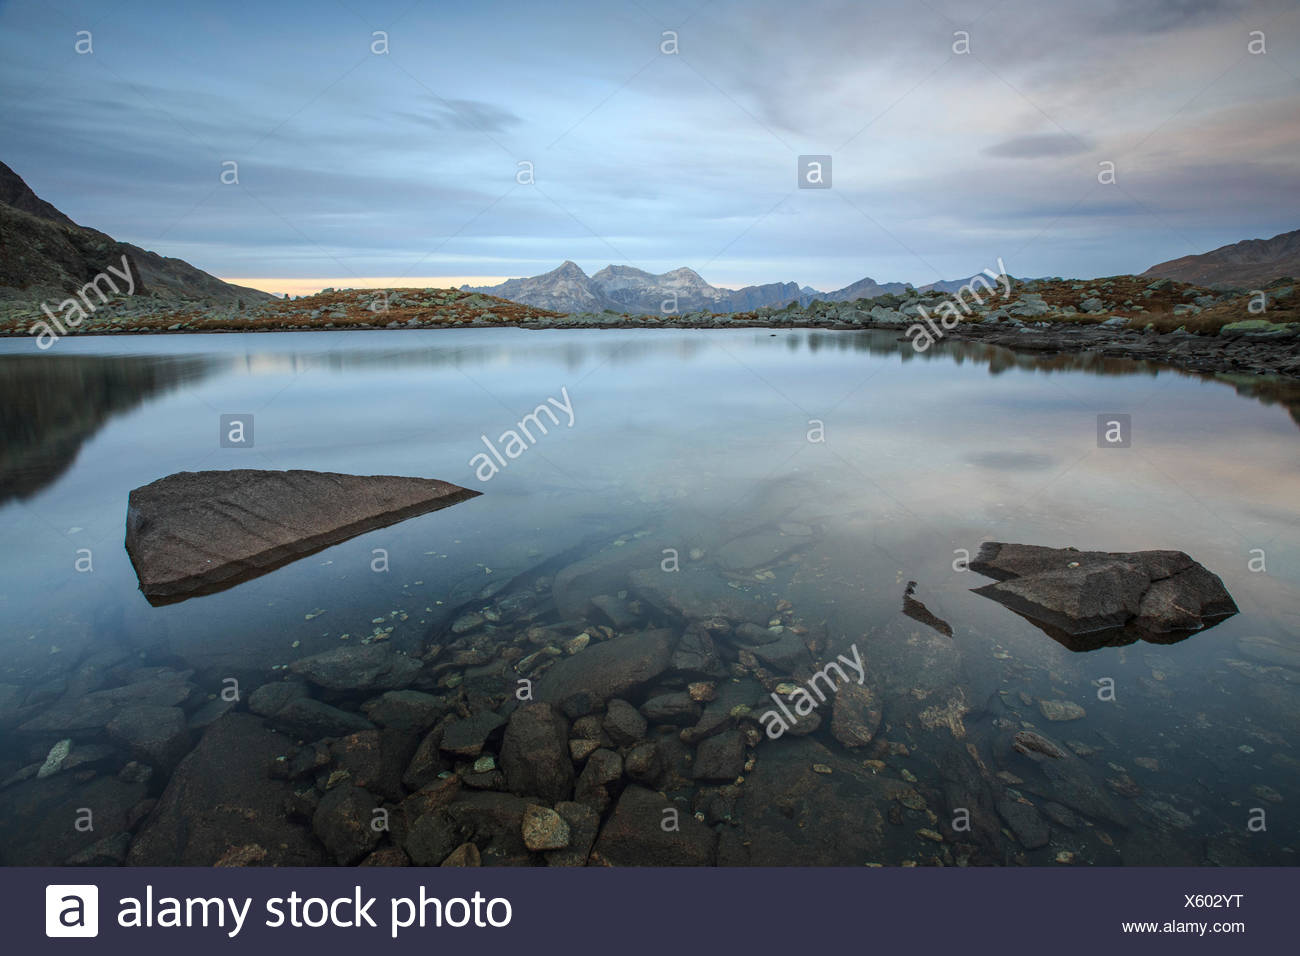 Peaks are reflected in Lake Bergsee at dusk Chiavenna Valley Spluga Valley Switzerland Europe - Stock Image